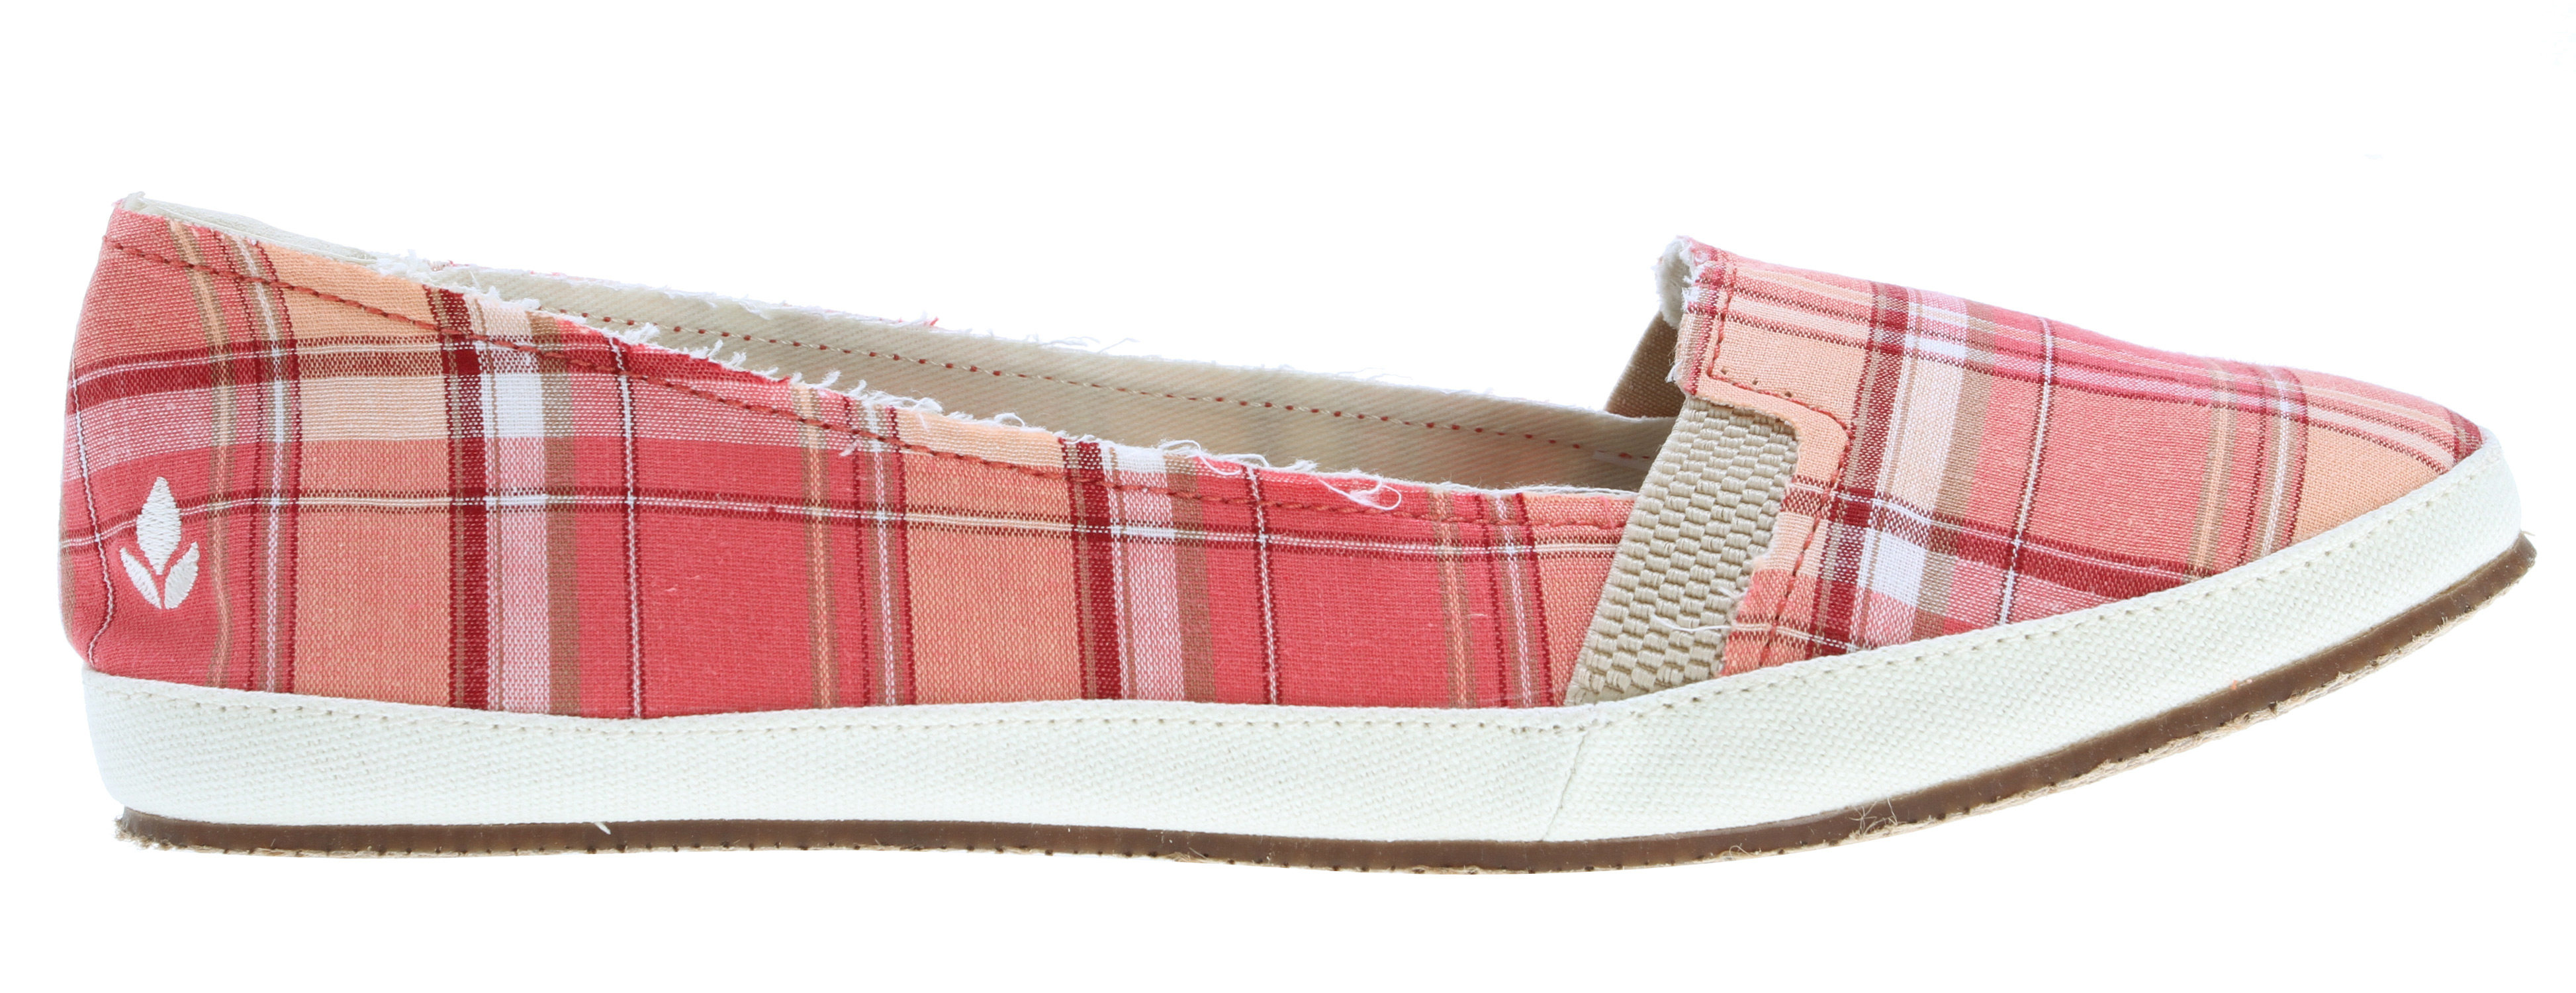 Surf Key Features of the Reef Summer Casual Shoes: Cotton canvas upper with elastic goring Interior suede heel patch for comfort mattress-inspired quilted pu foam footbed with anatomical arch support Durable rubber outsole with jute inlay - $34.95